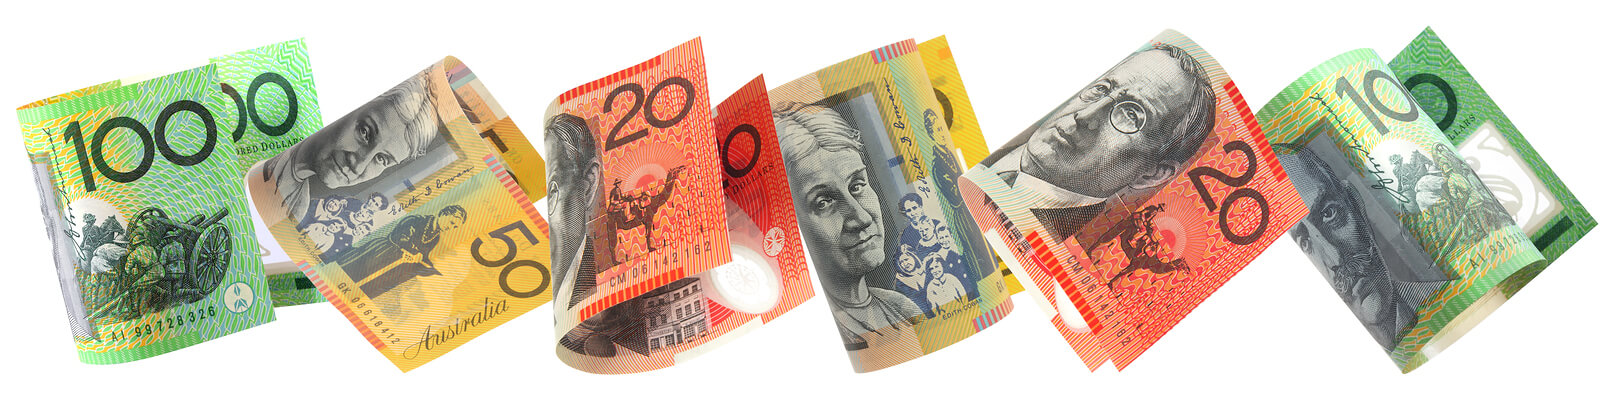 bigstockphoto_Aussie_Money_Border